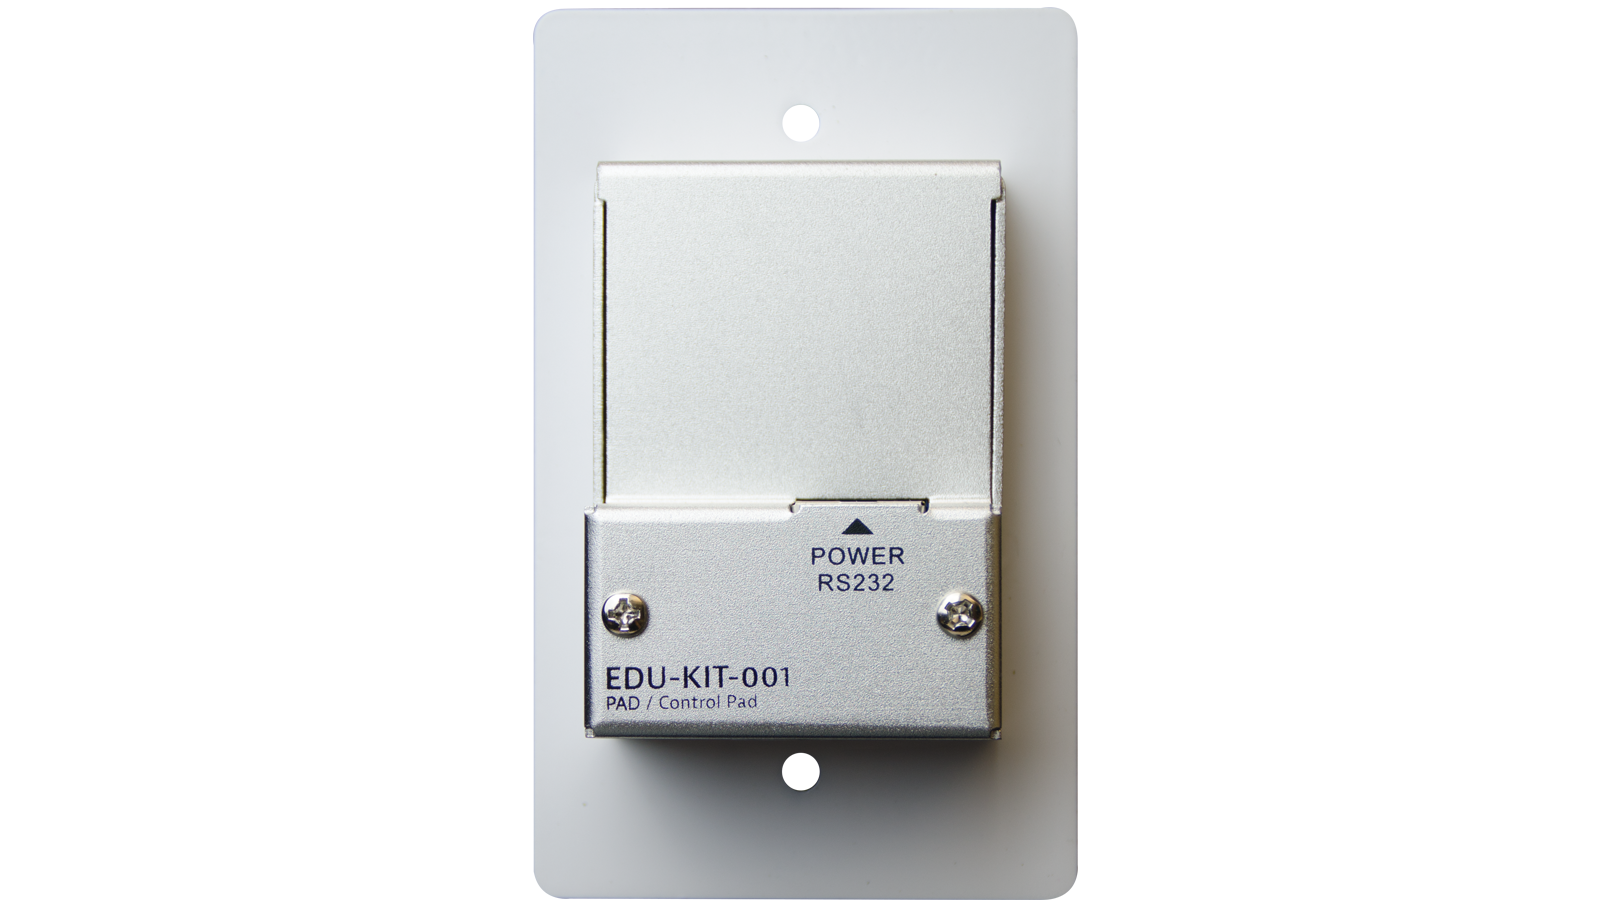 Edu Kit 001 Hdmi Av Distribution And Control System Wiring A Switch Gfci Thin To Other Source Alternates That Meet Or Exceed Specifications